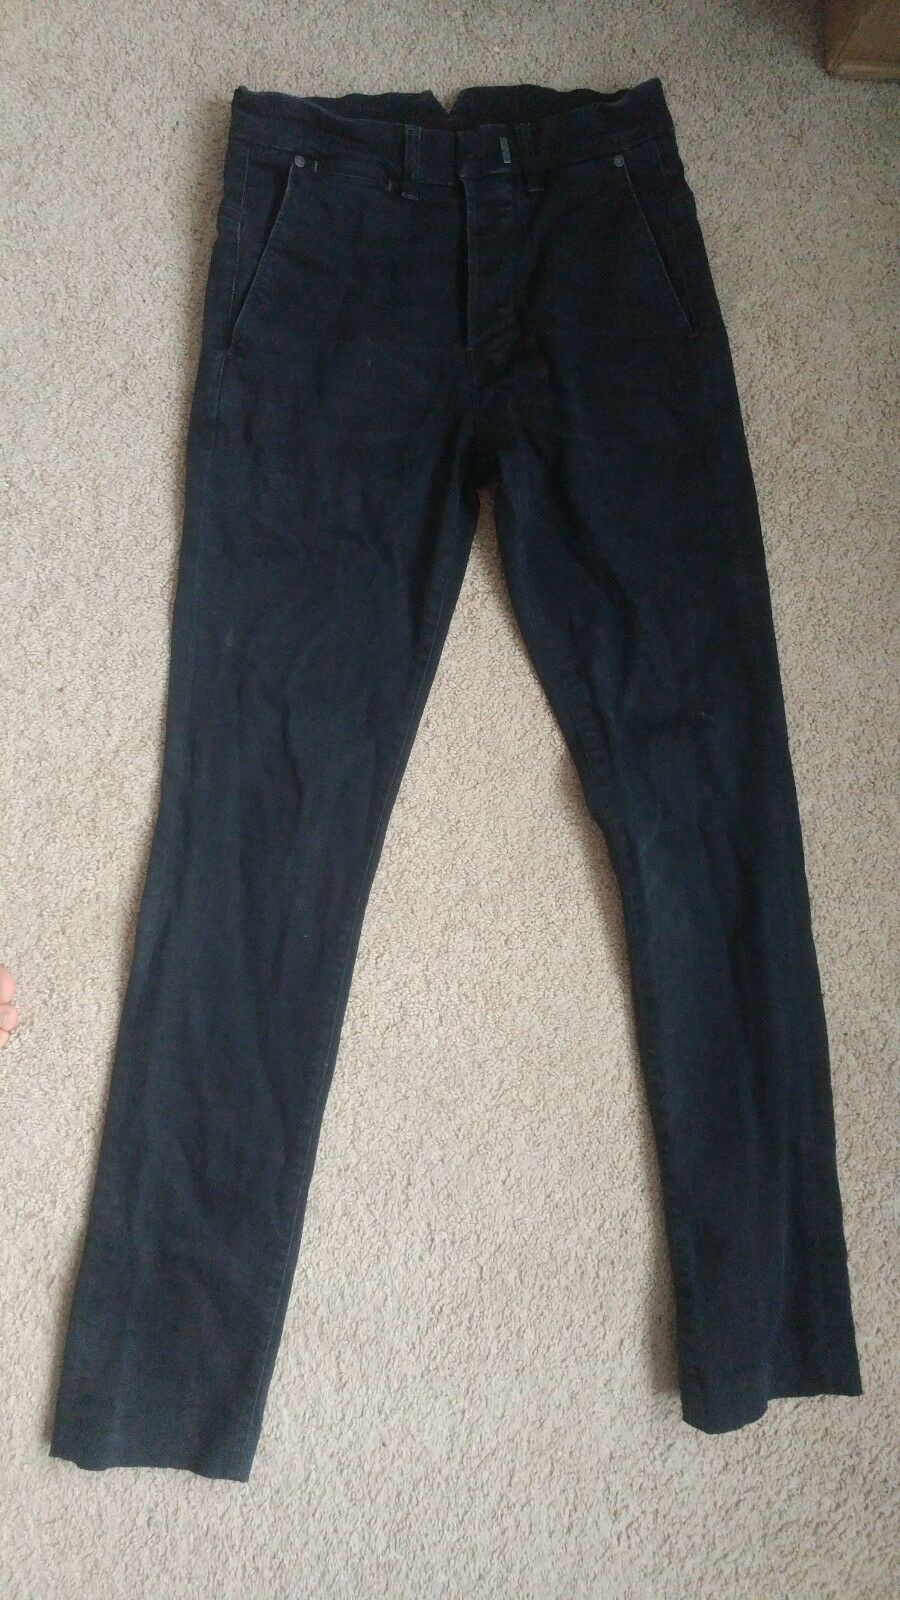 7 for all mankind mens jeans slim fit 28 made in italy